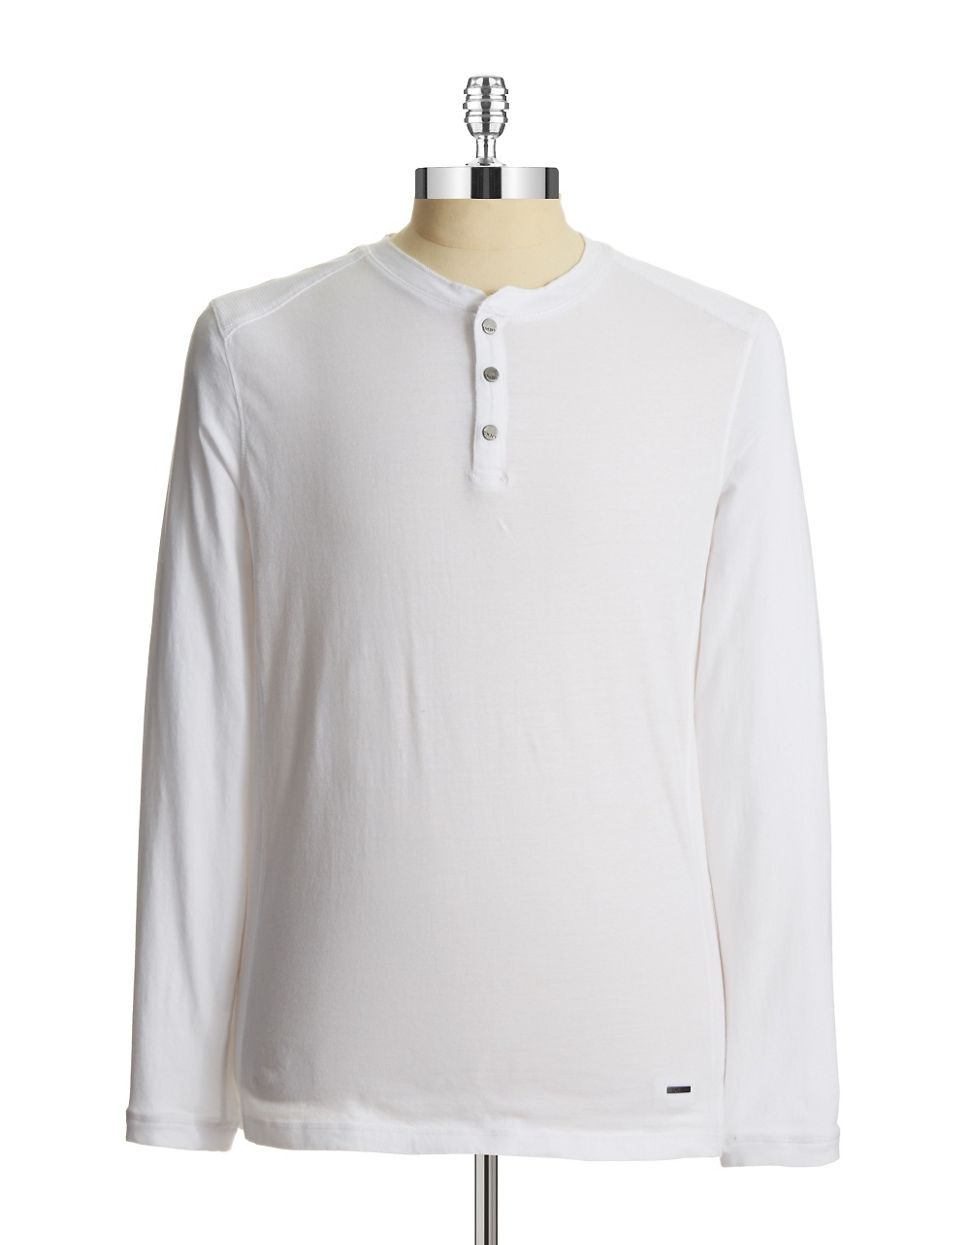 Dkny Thermal Accented Henley Shirt In White For Men Lyst